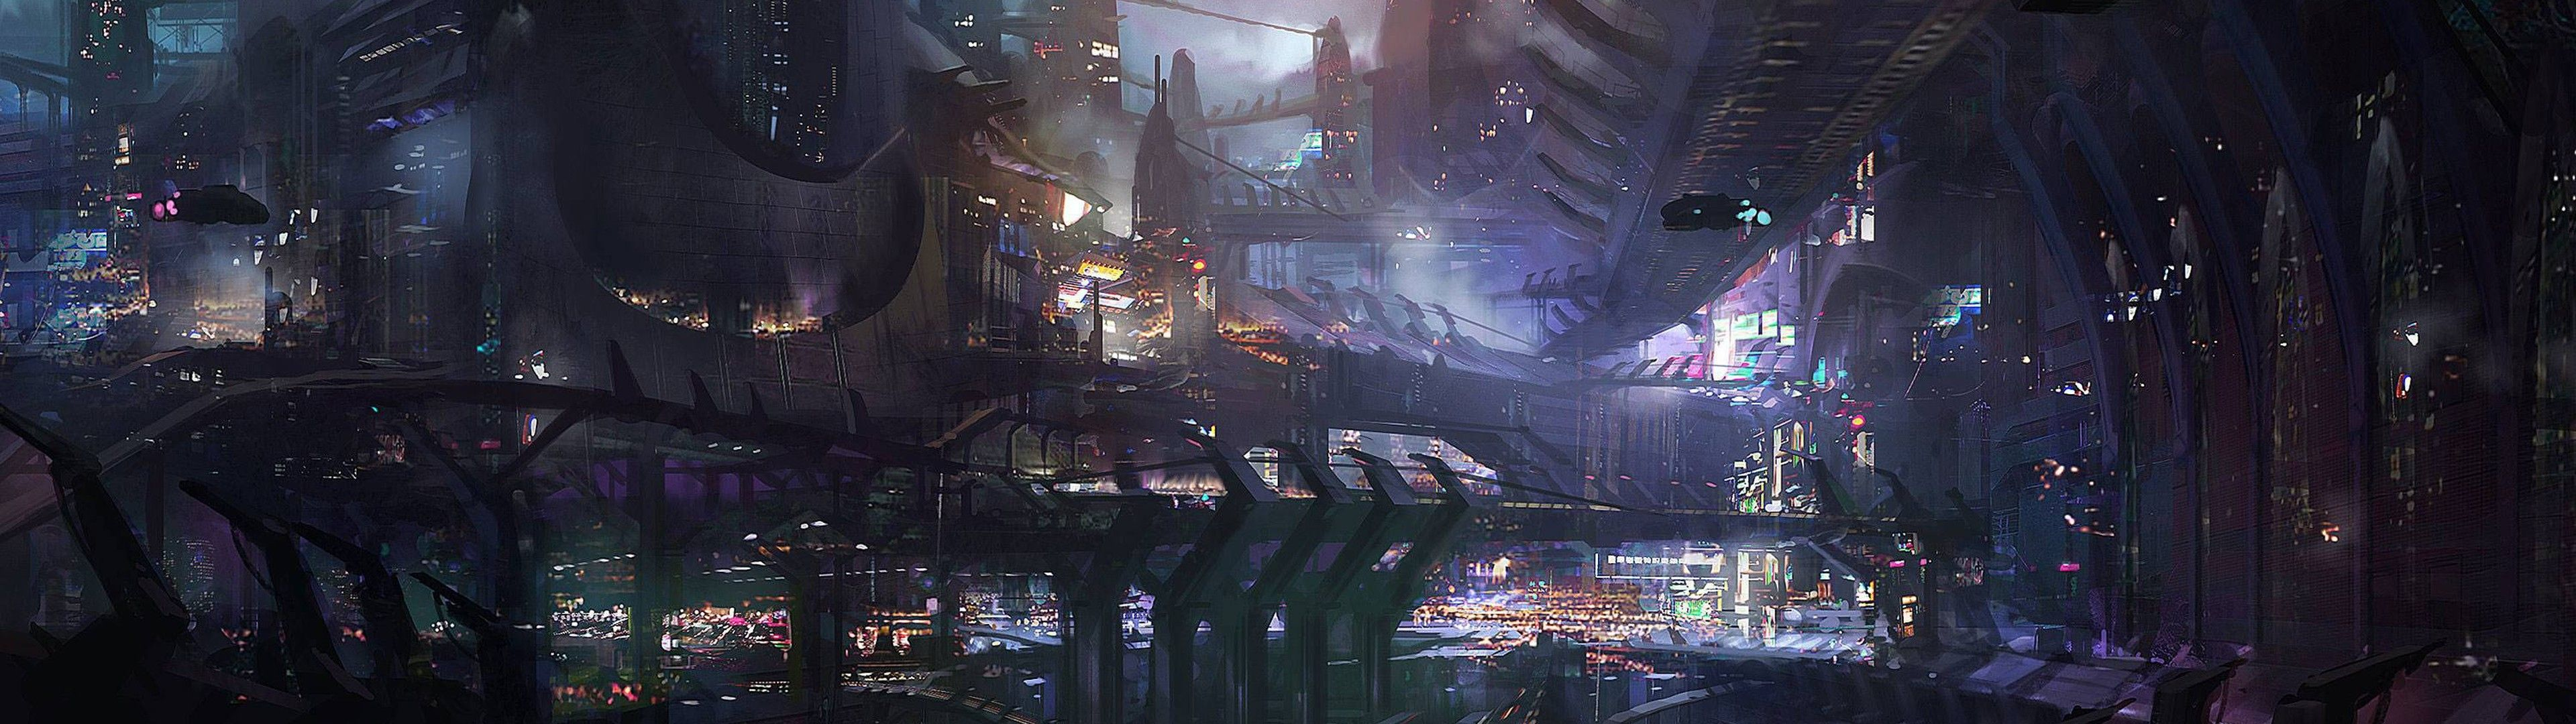 Forever city sci fi pinterest concept art wallpaper and sci fi weekly wallpaper dump hello everyone i am back for another week of wallpapers all of these wallpapers are as usual all of these next 10 wallpape voltagebd